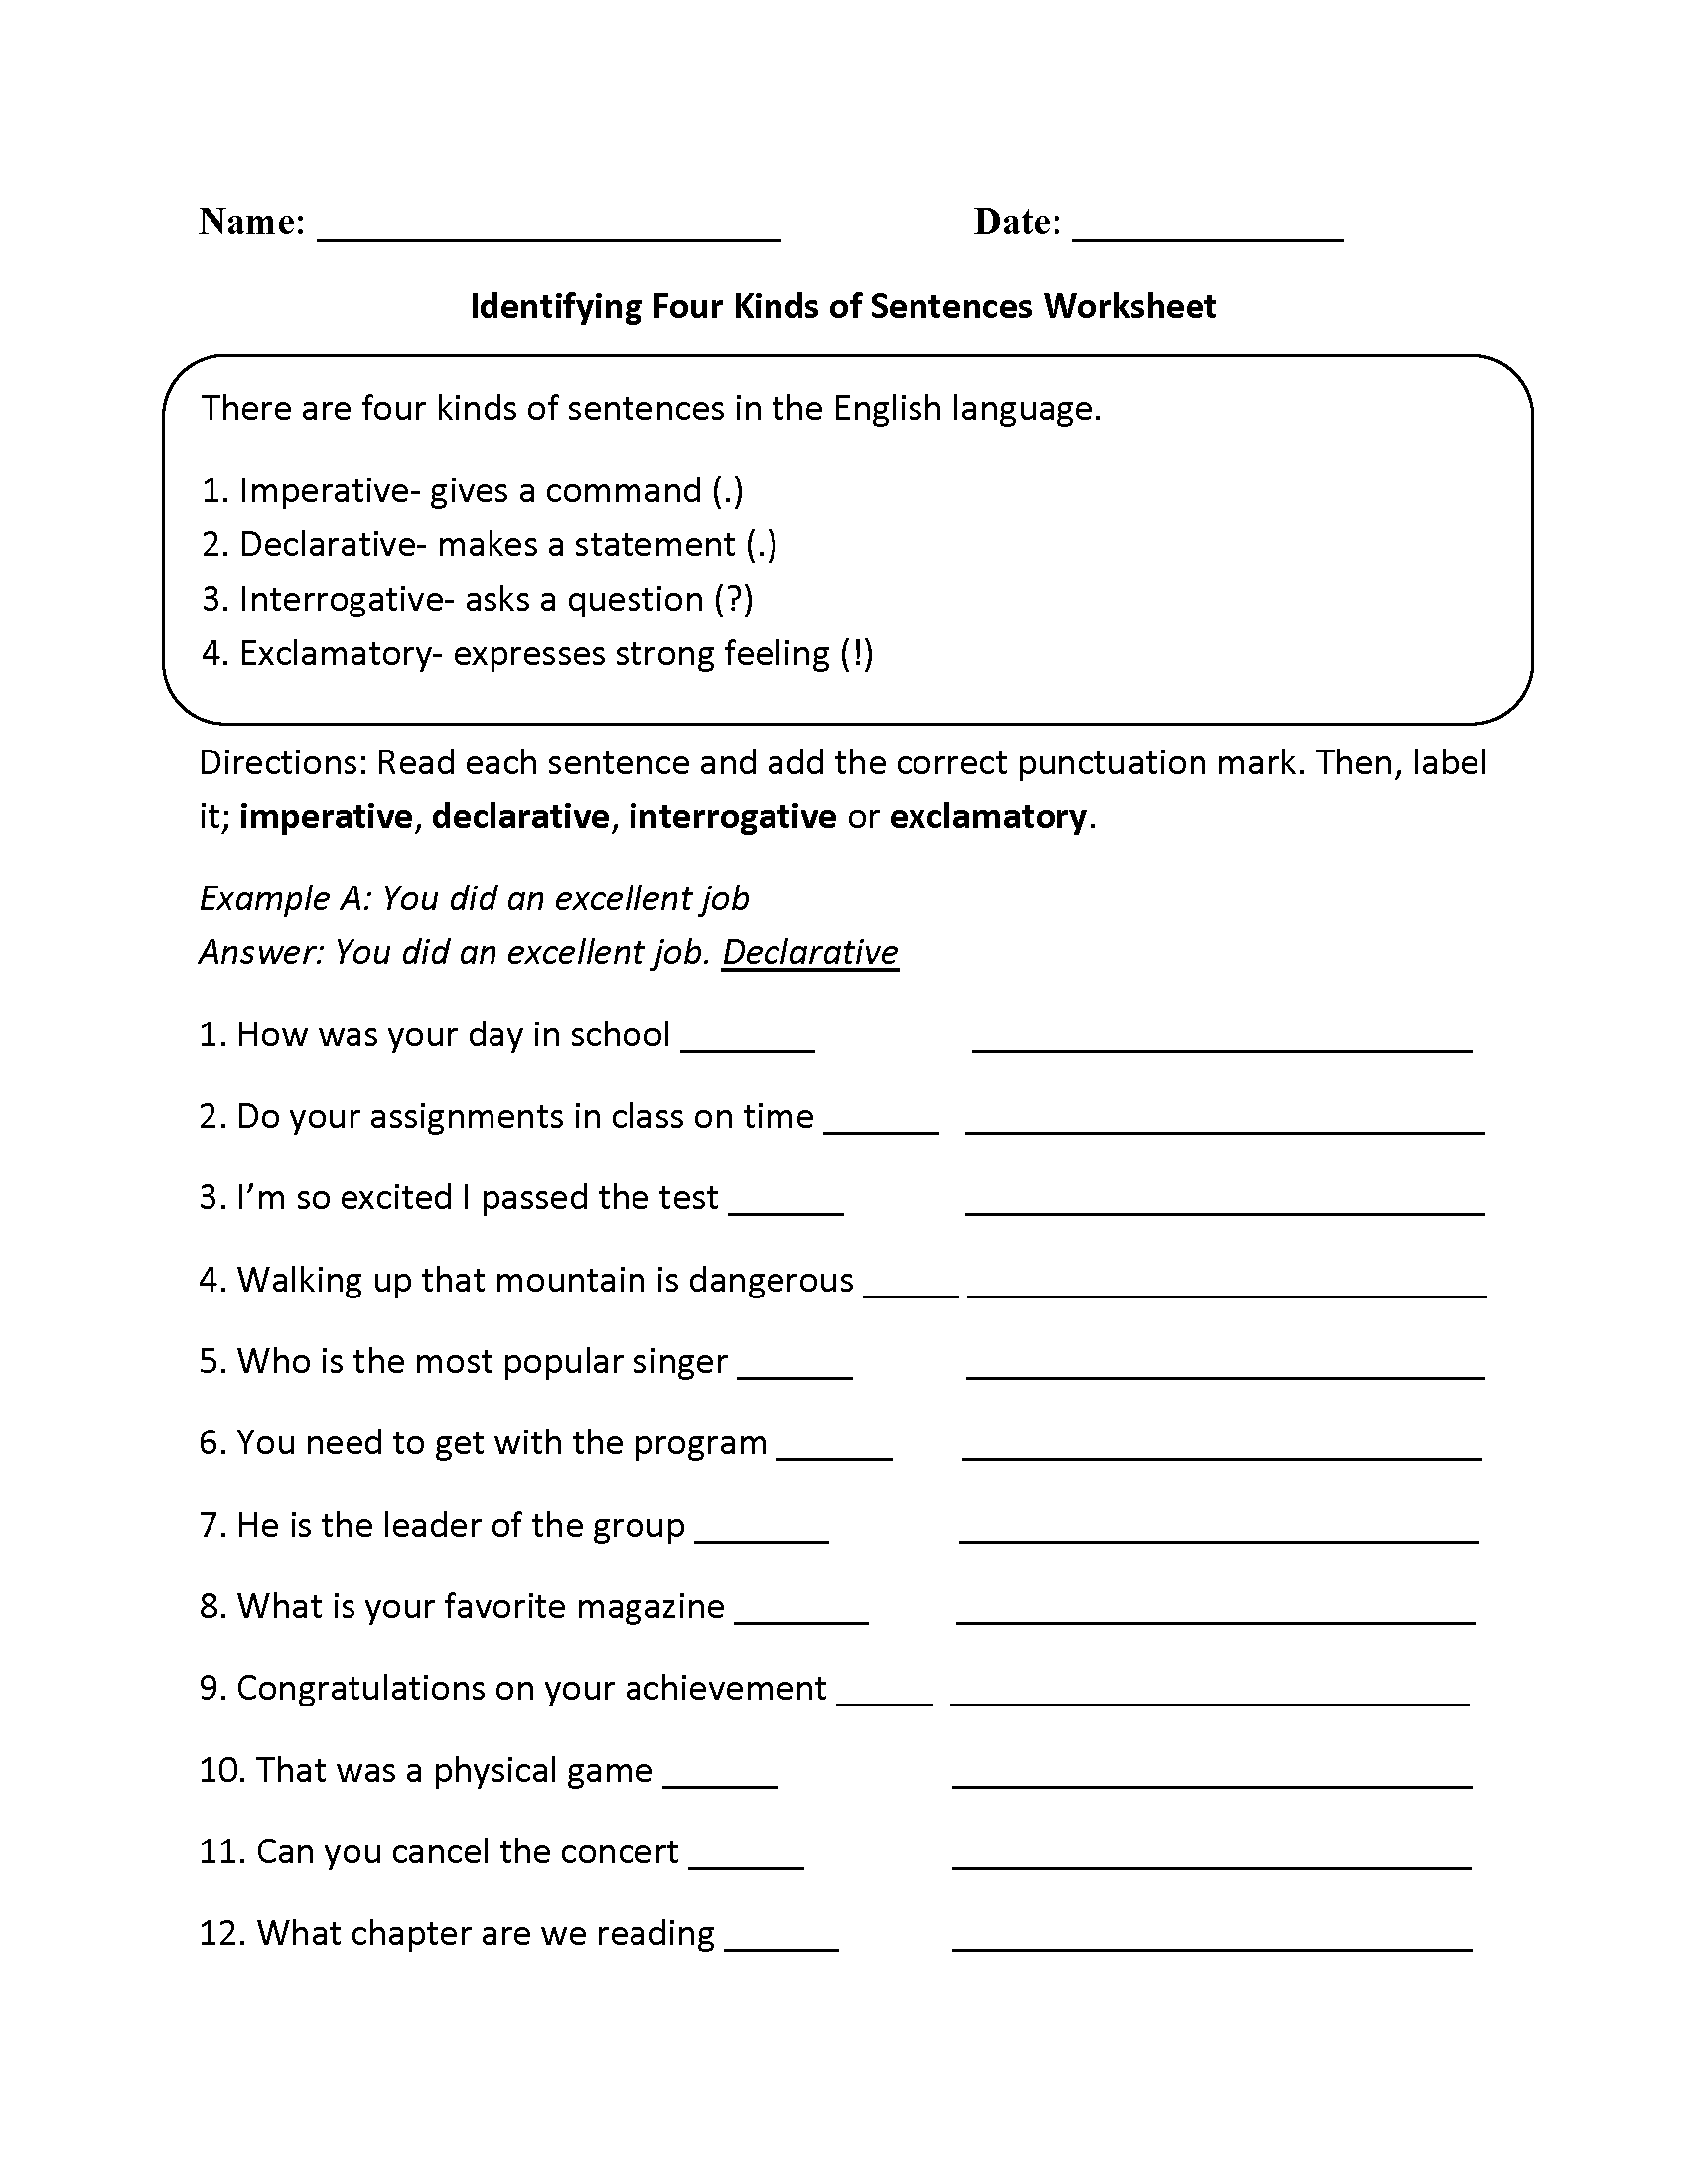 Free Worksheet Cut And Paste Sentence Worksheets declarative and interrogative sentences worksheet rringband kinds of worksheets practicing four sentences